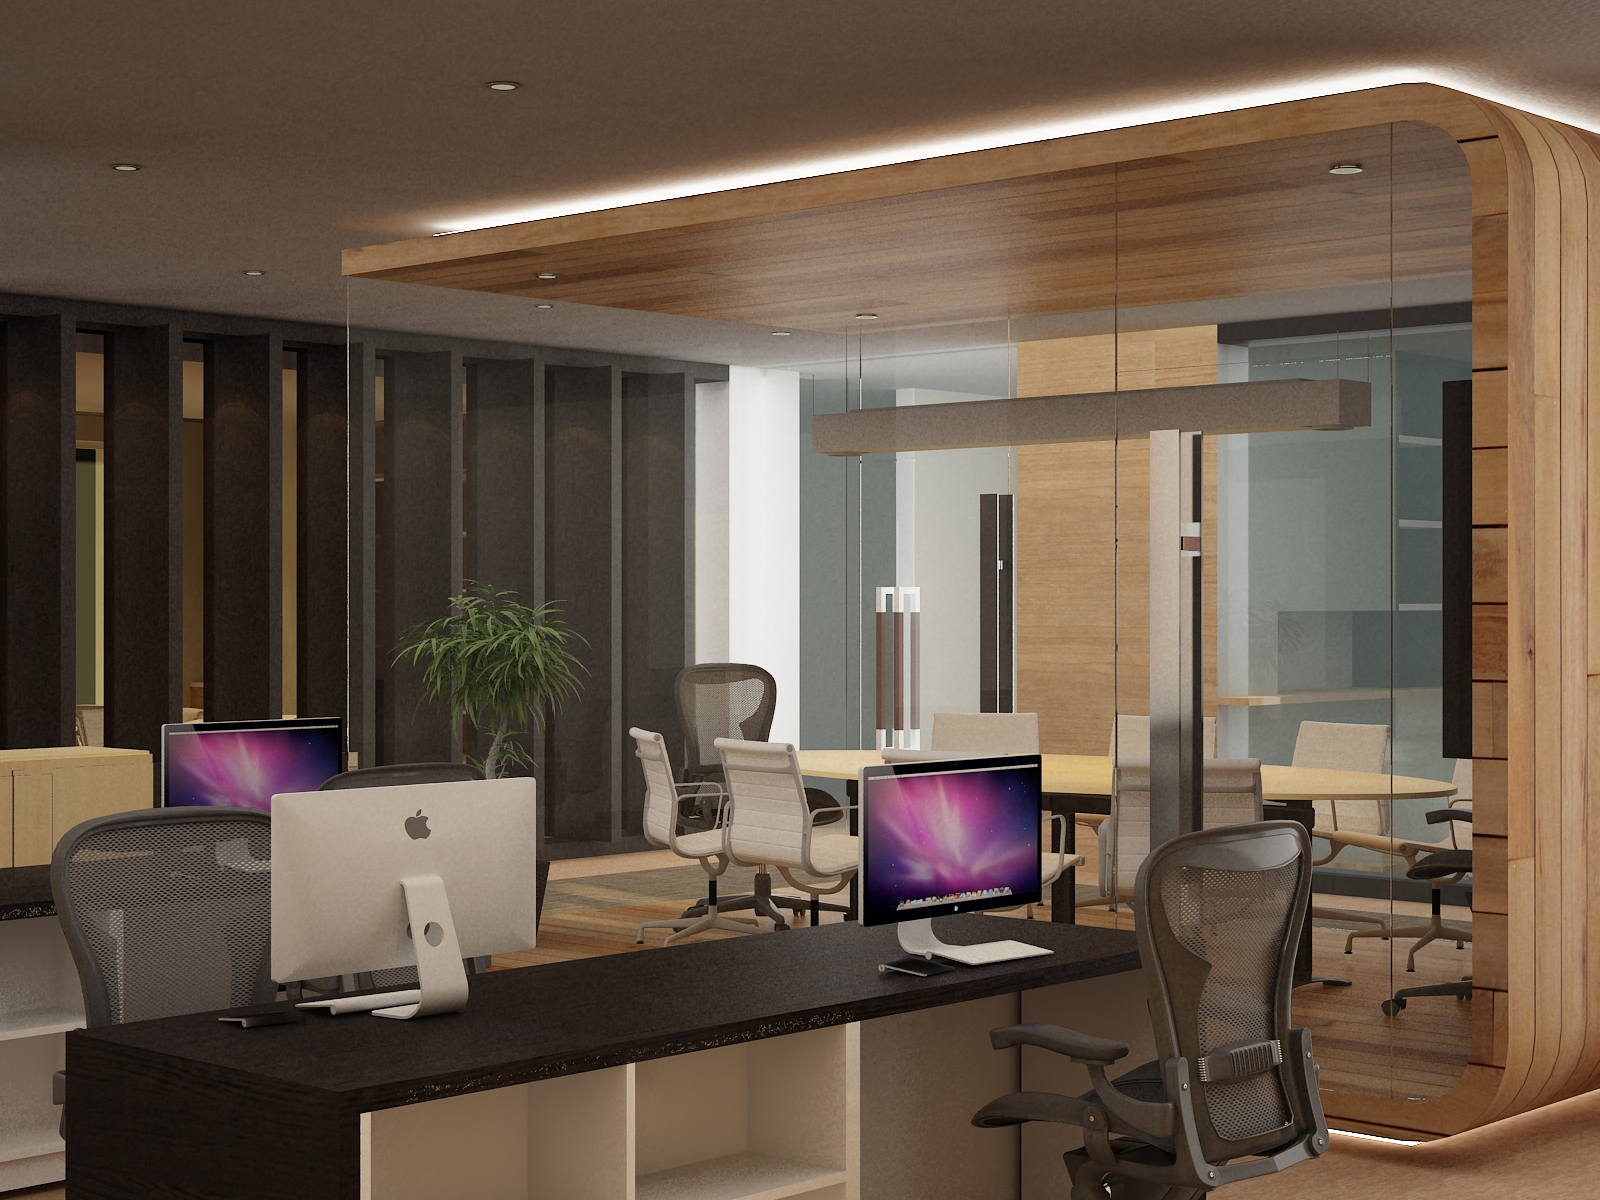 pictures for an office. Utilizing It, We Came Up With An Unusual Zoning, Meeting Room In The Centre Of Office. Work As Focalpoint Whole Space, Pictures For Office